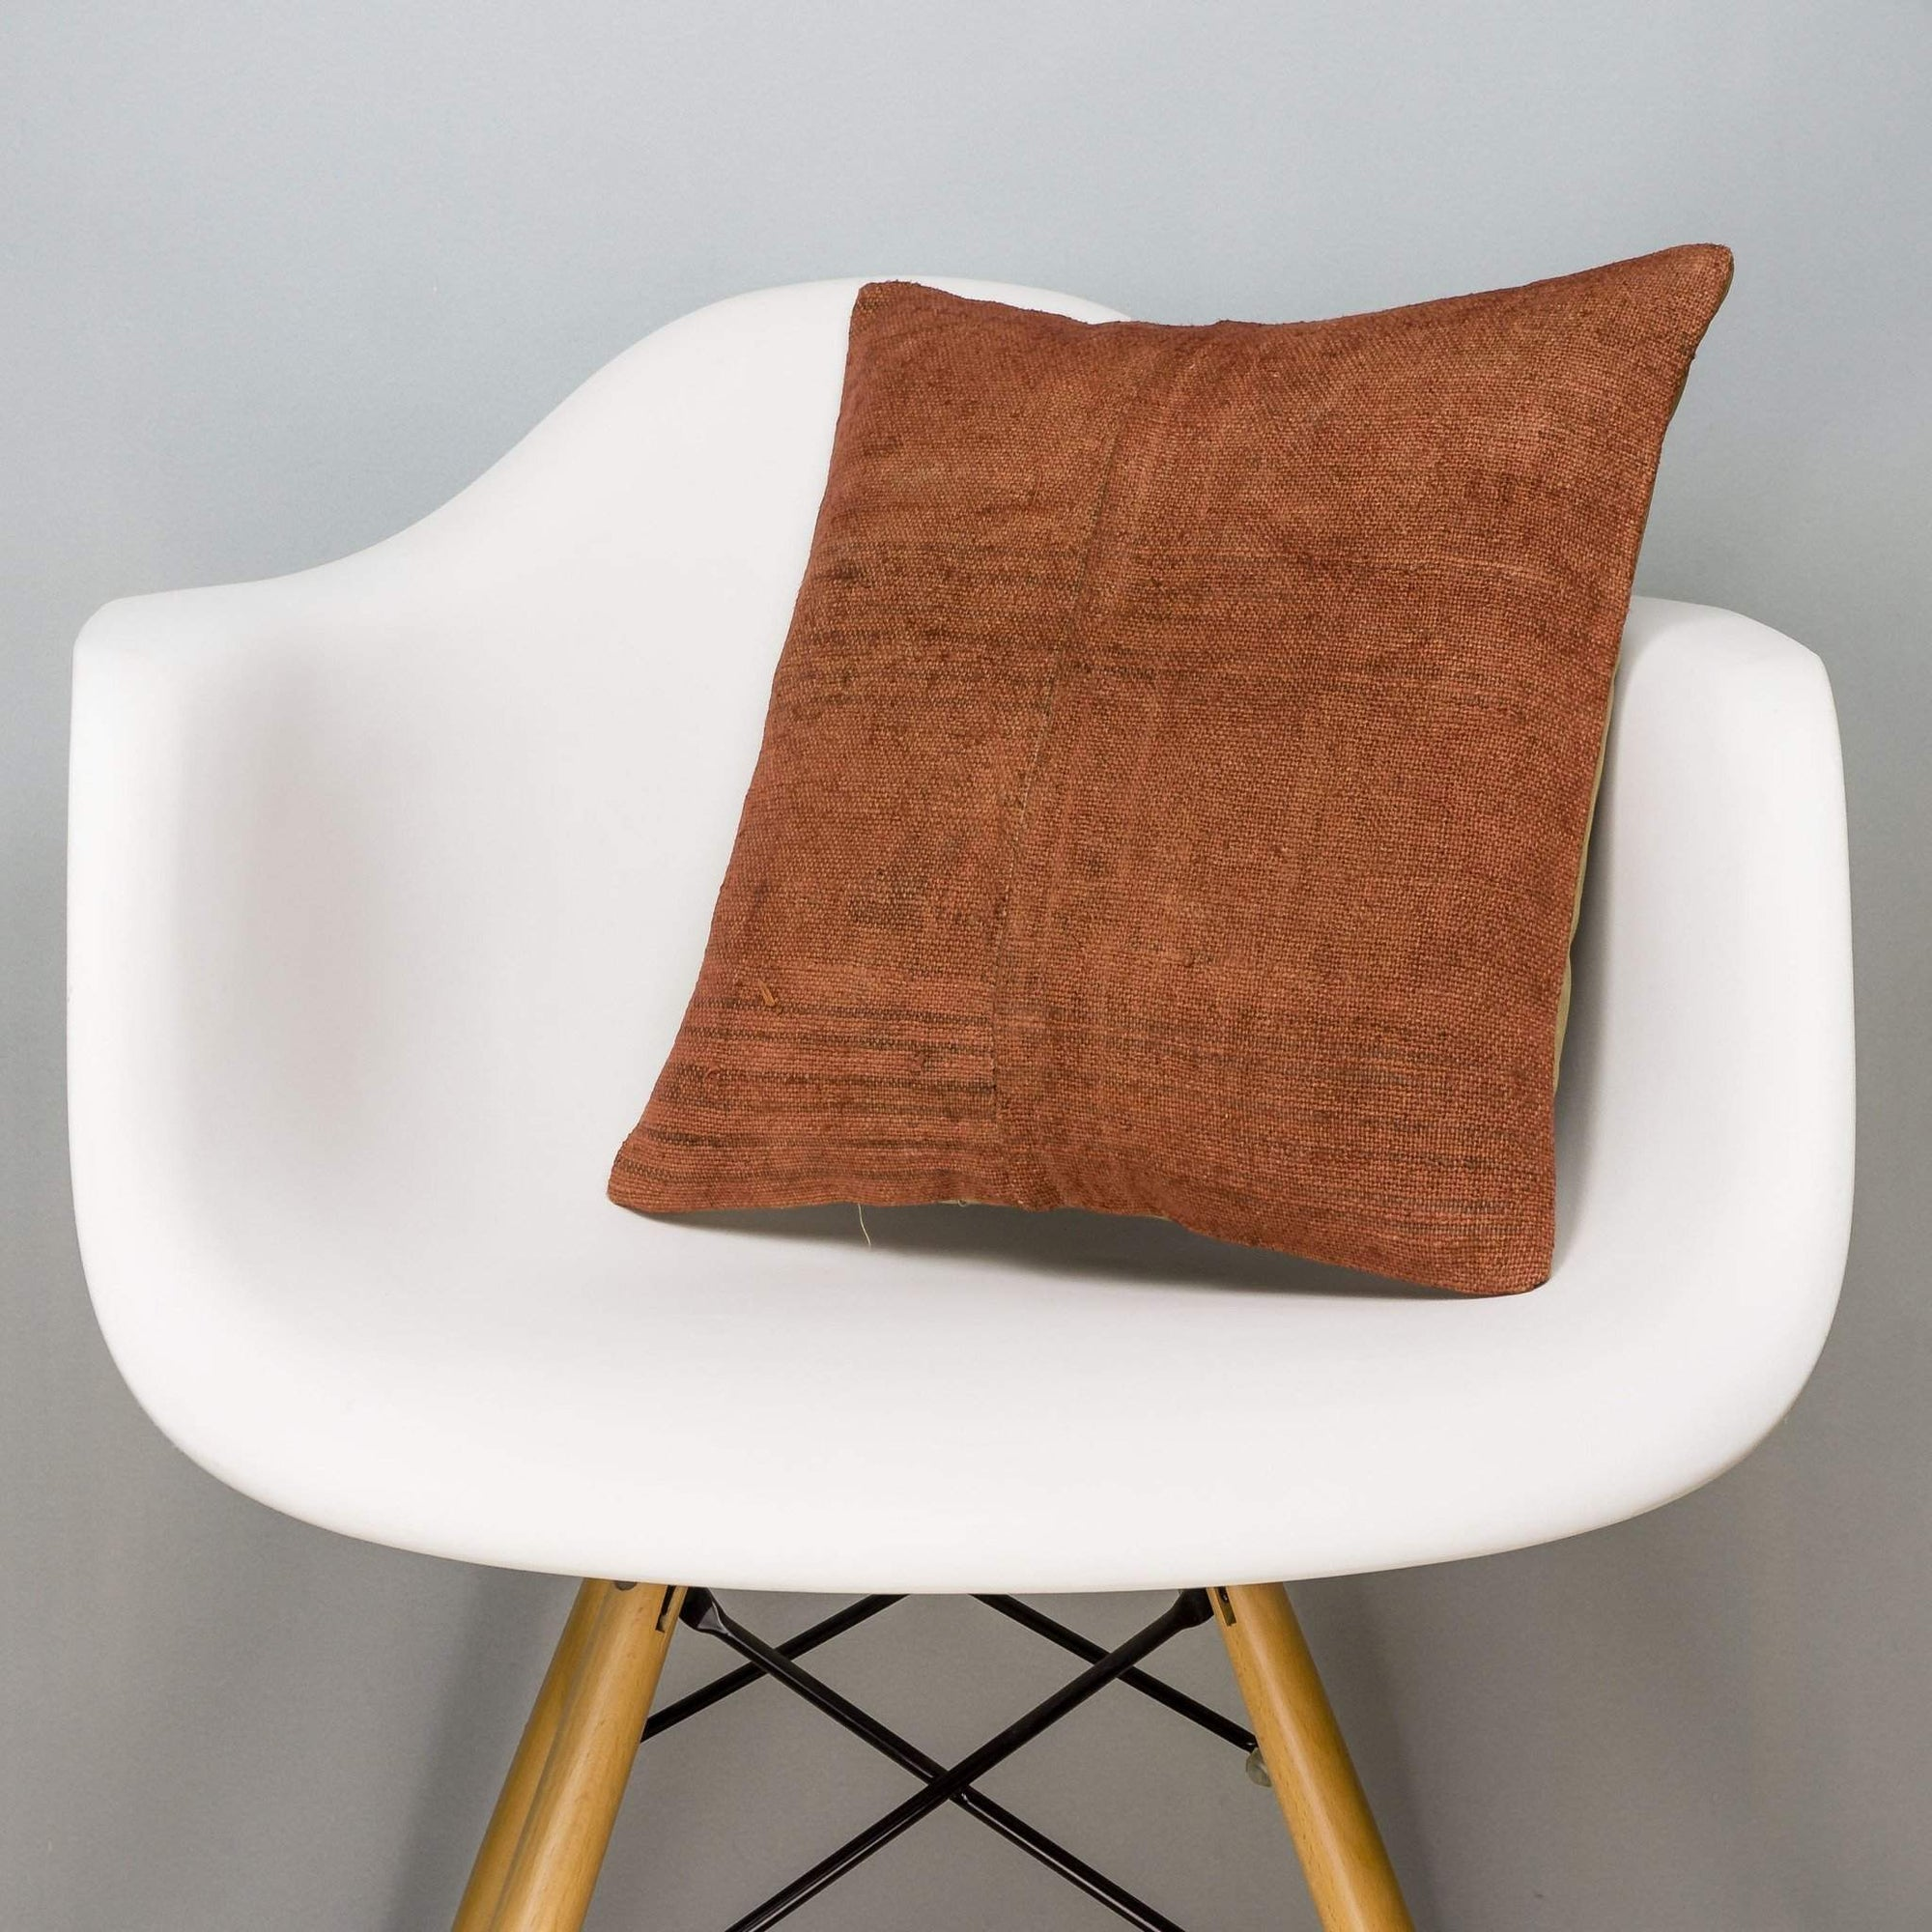 Plain Brown Kilim Pillow Cover 16x16 2928 - kilimpillowstore